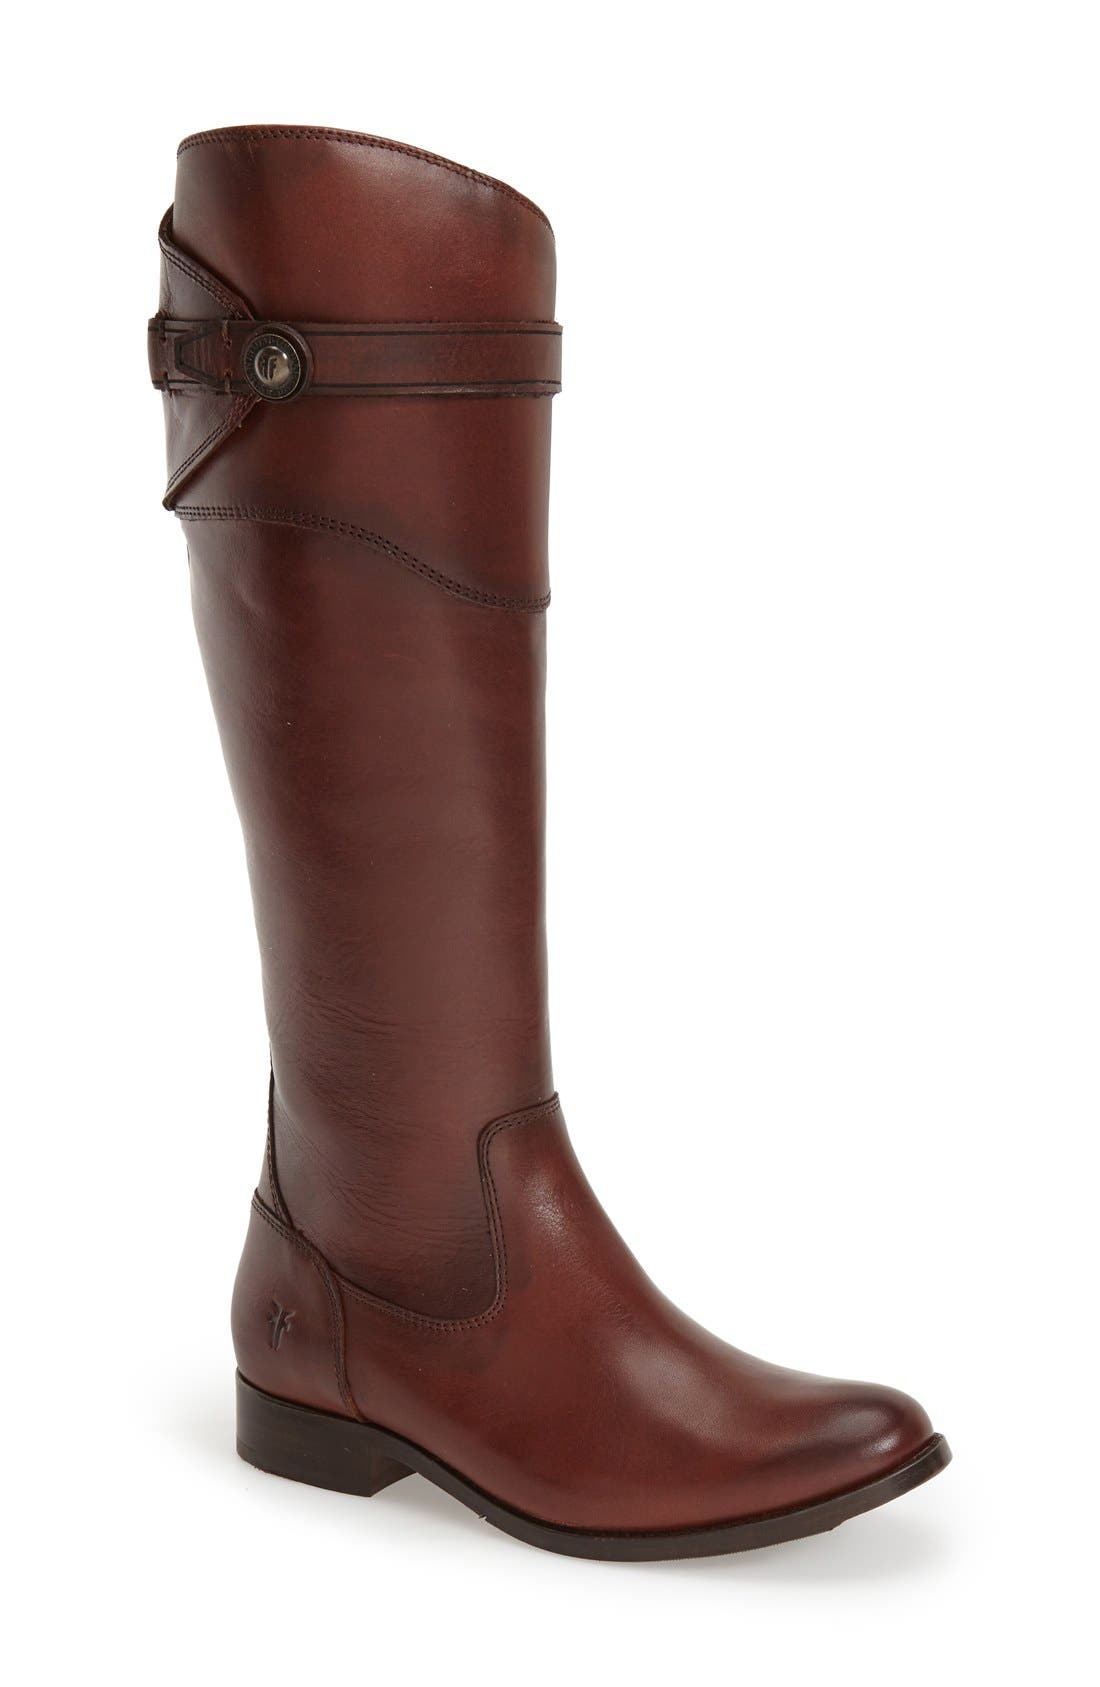 Main Image - Frye 'Molly Button' Riding Boot (Women)